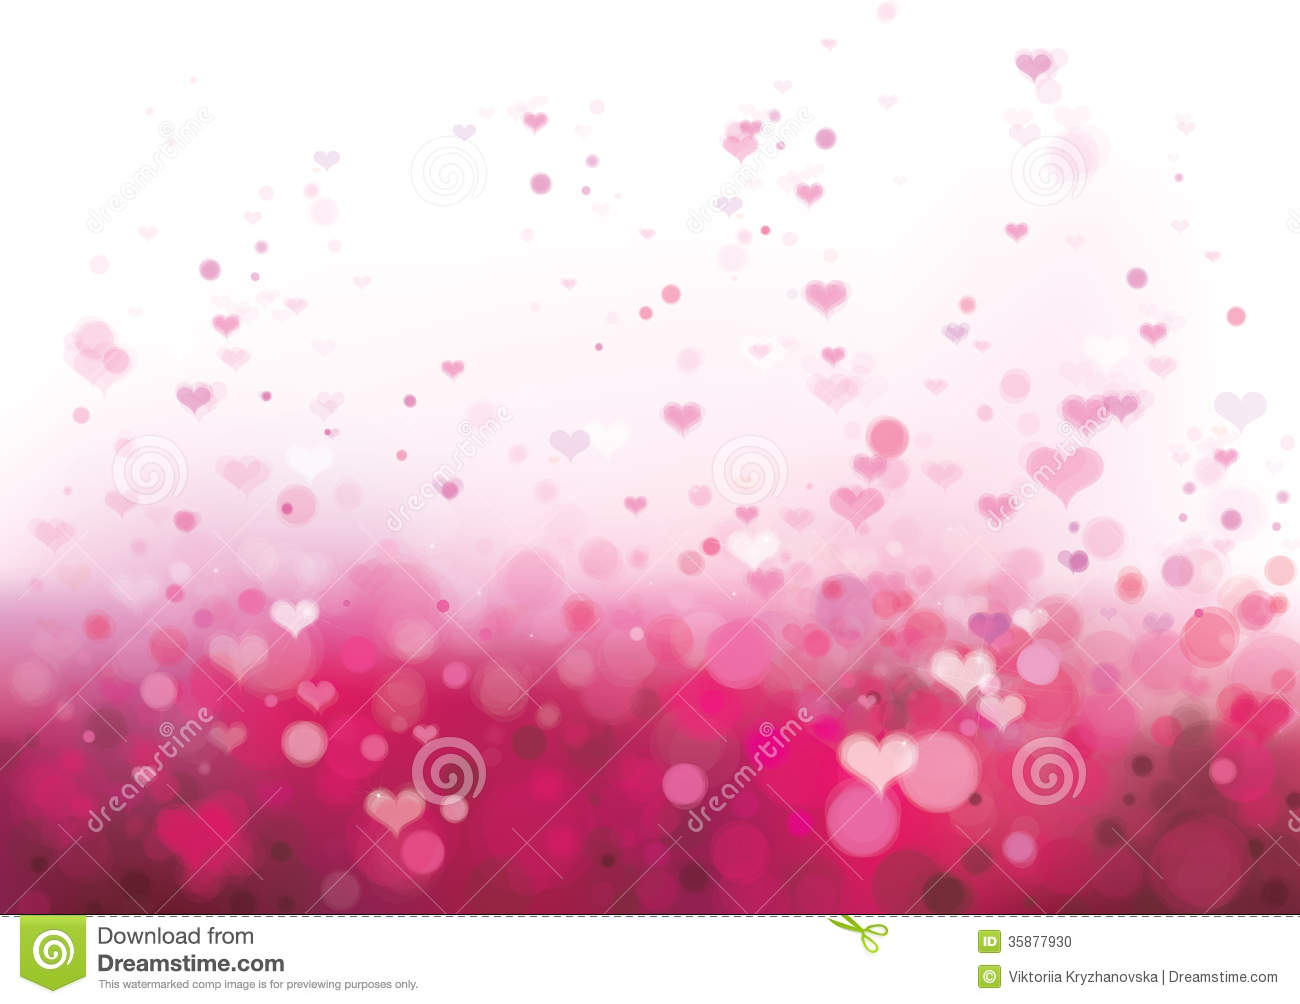 holiday hearts wallpaper vector - photo #14